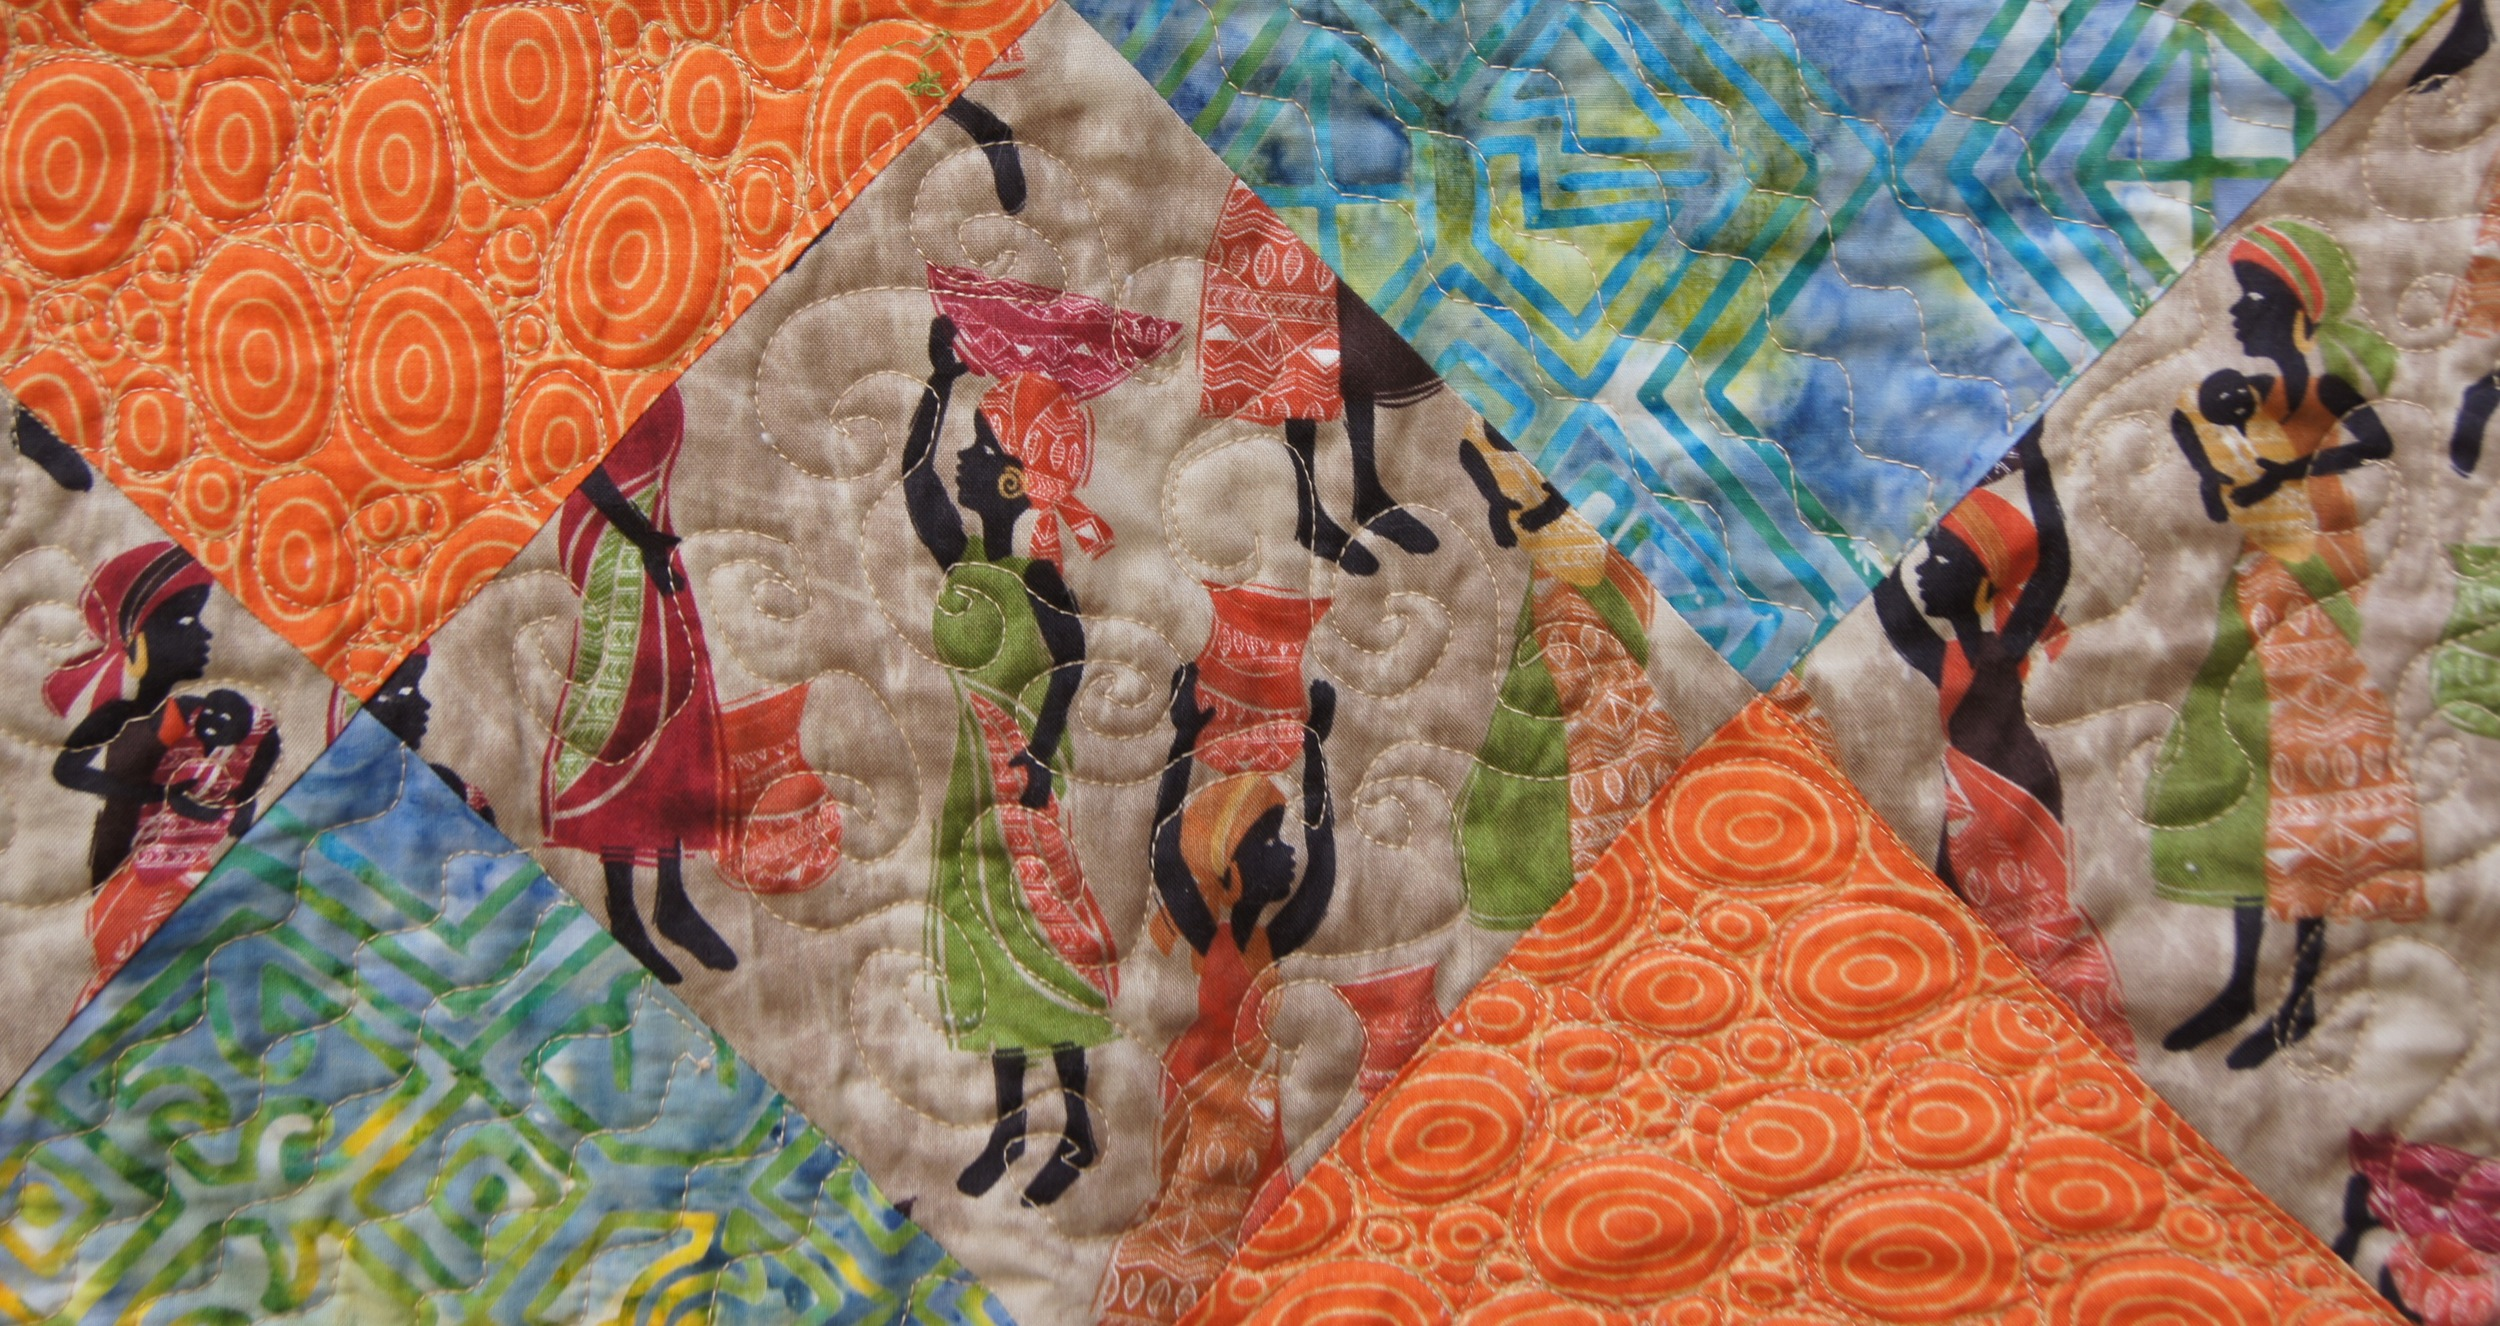 Bernina Stitch #4 to make the waves in the river blocks.  Free motion quilting to make the stream pebbles and swirls around the women.